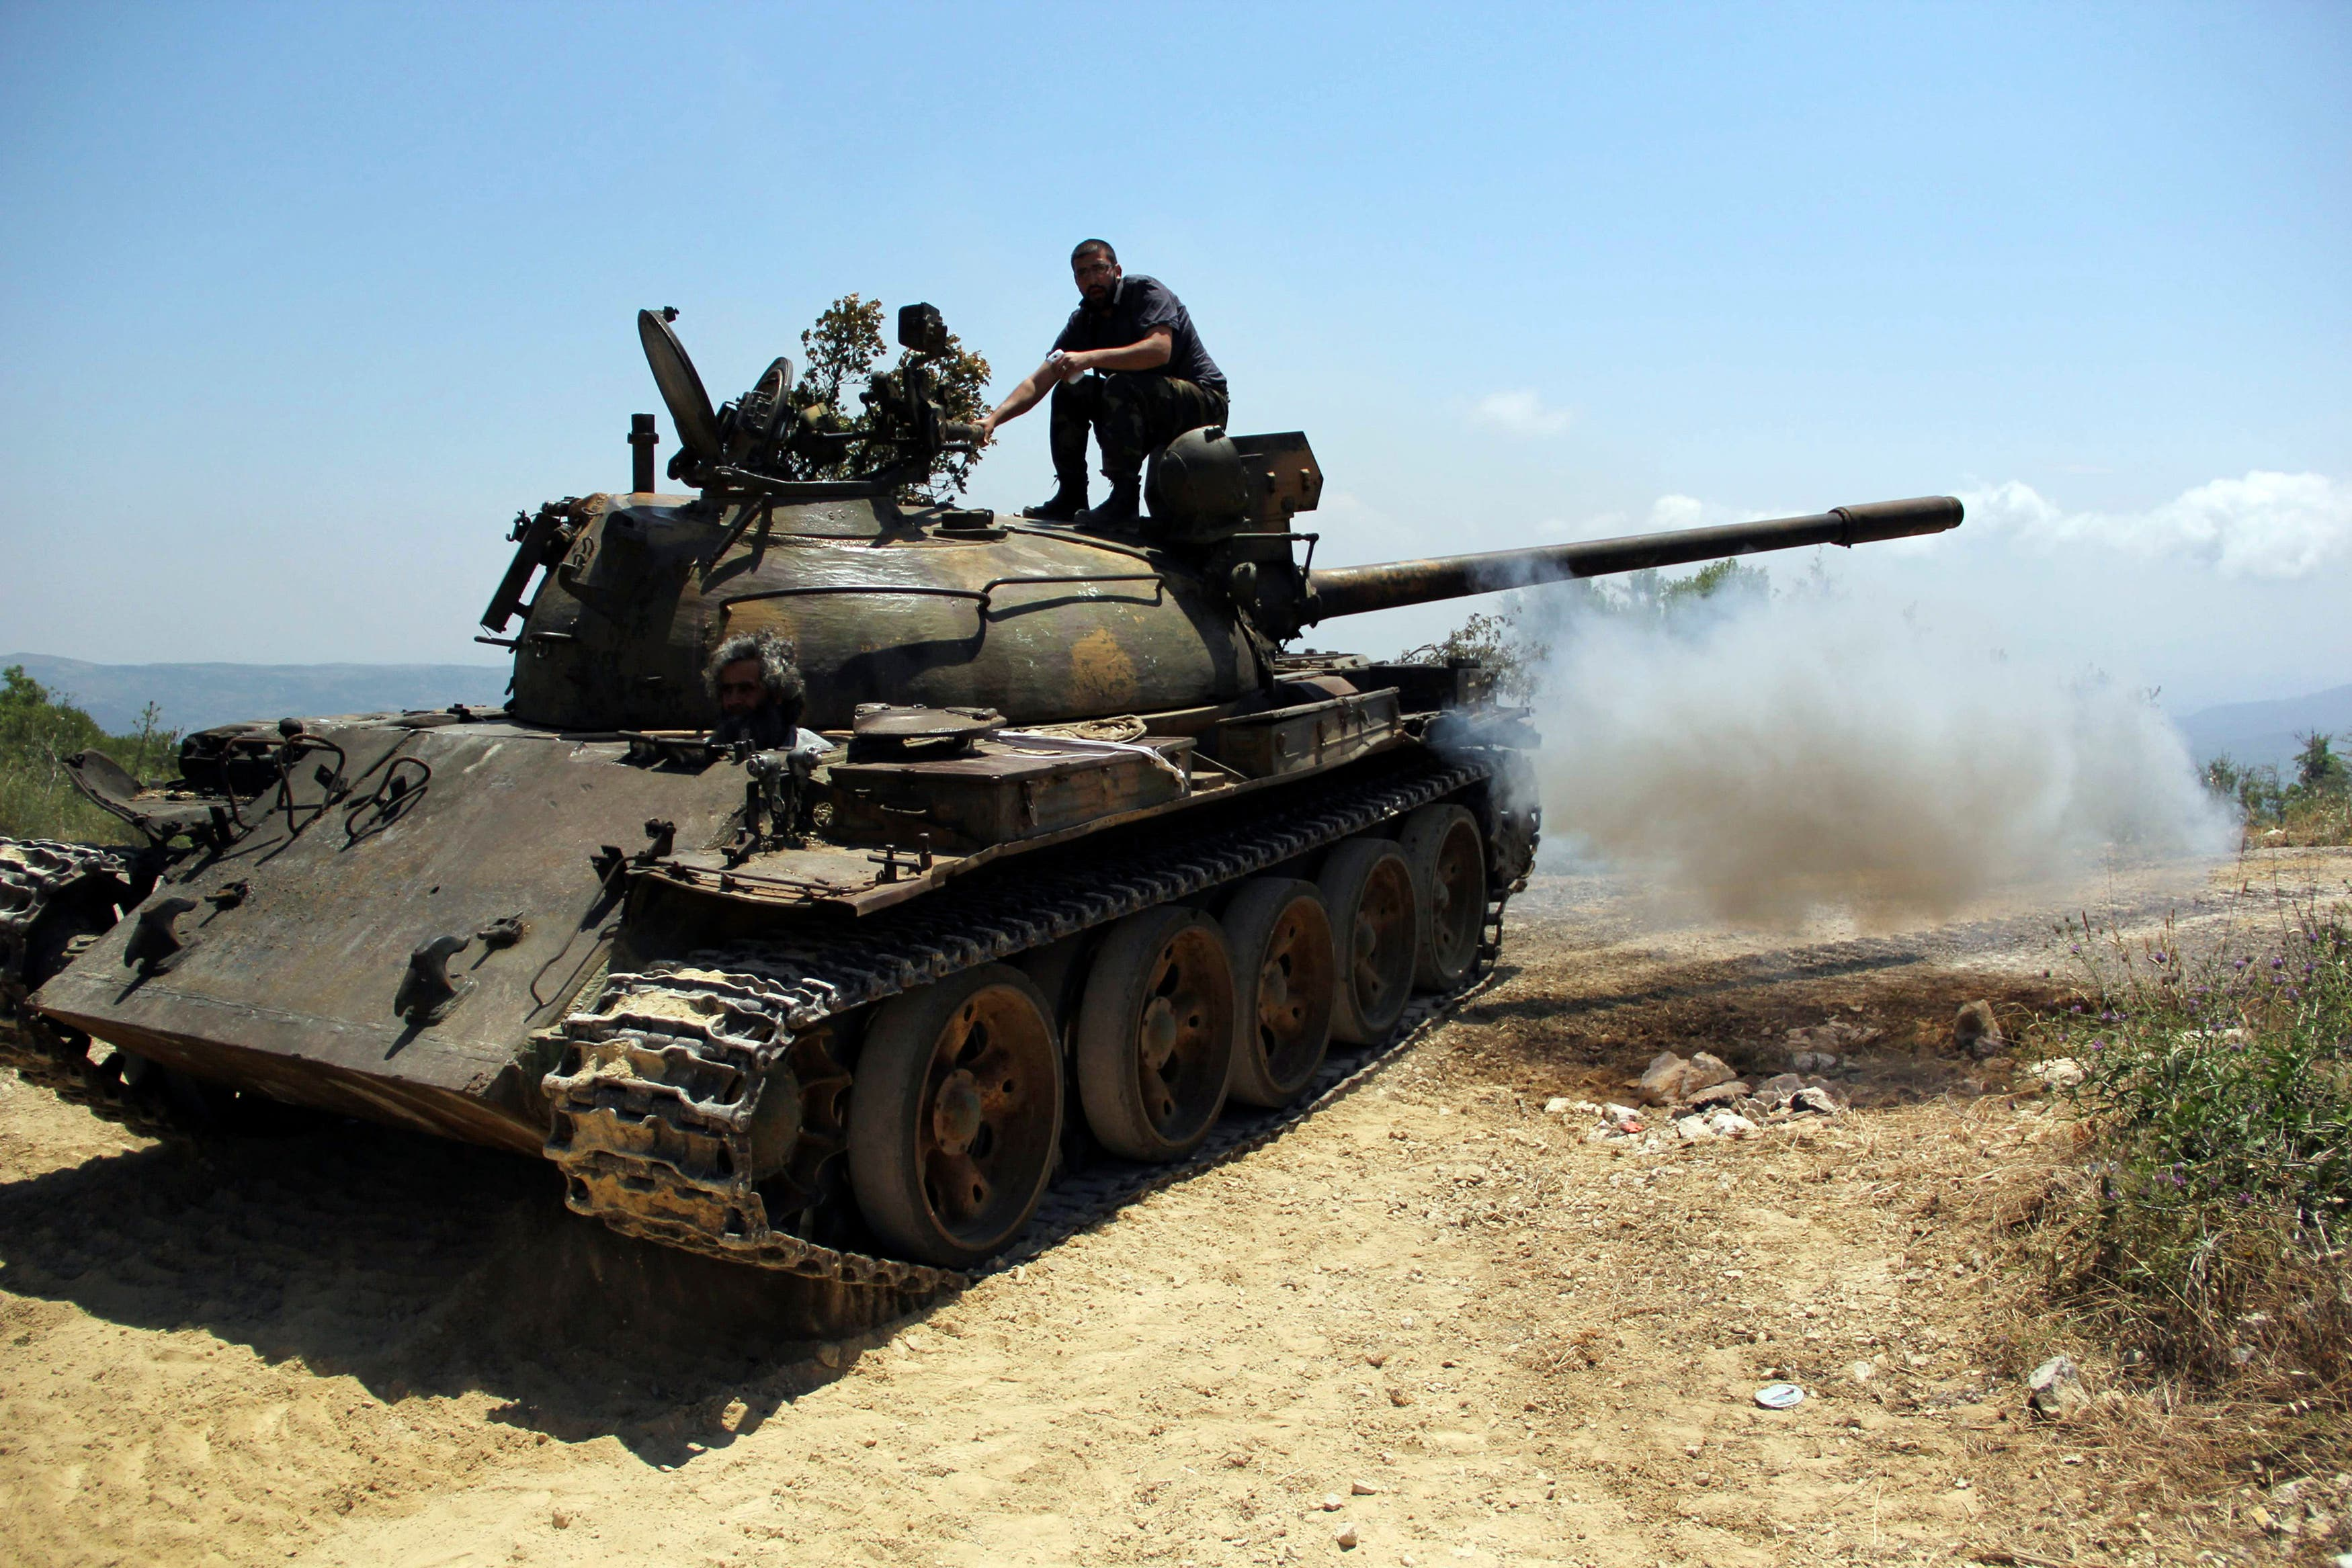 Rebel fighters are seen on a tank during what they said an offensive against forces loyal to Syria's President Bashar al-Assad who are positioned around the Armenian Christian town of Kasab May 26, 2014. (Reuters)